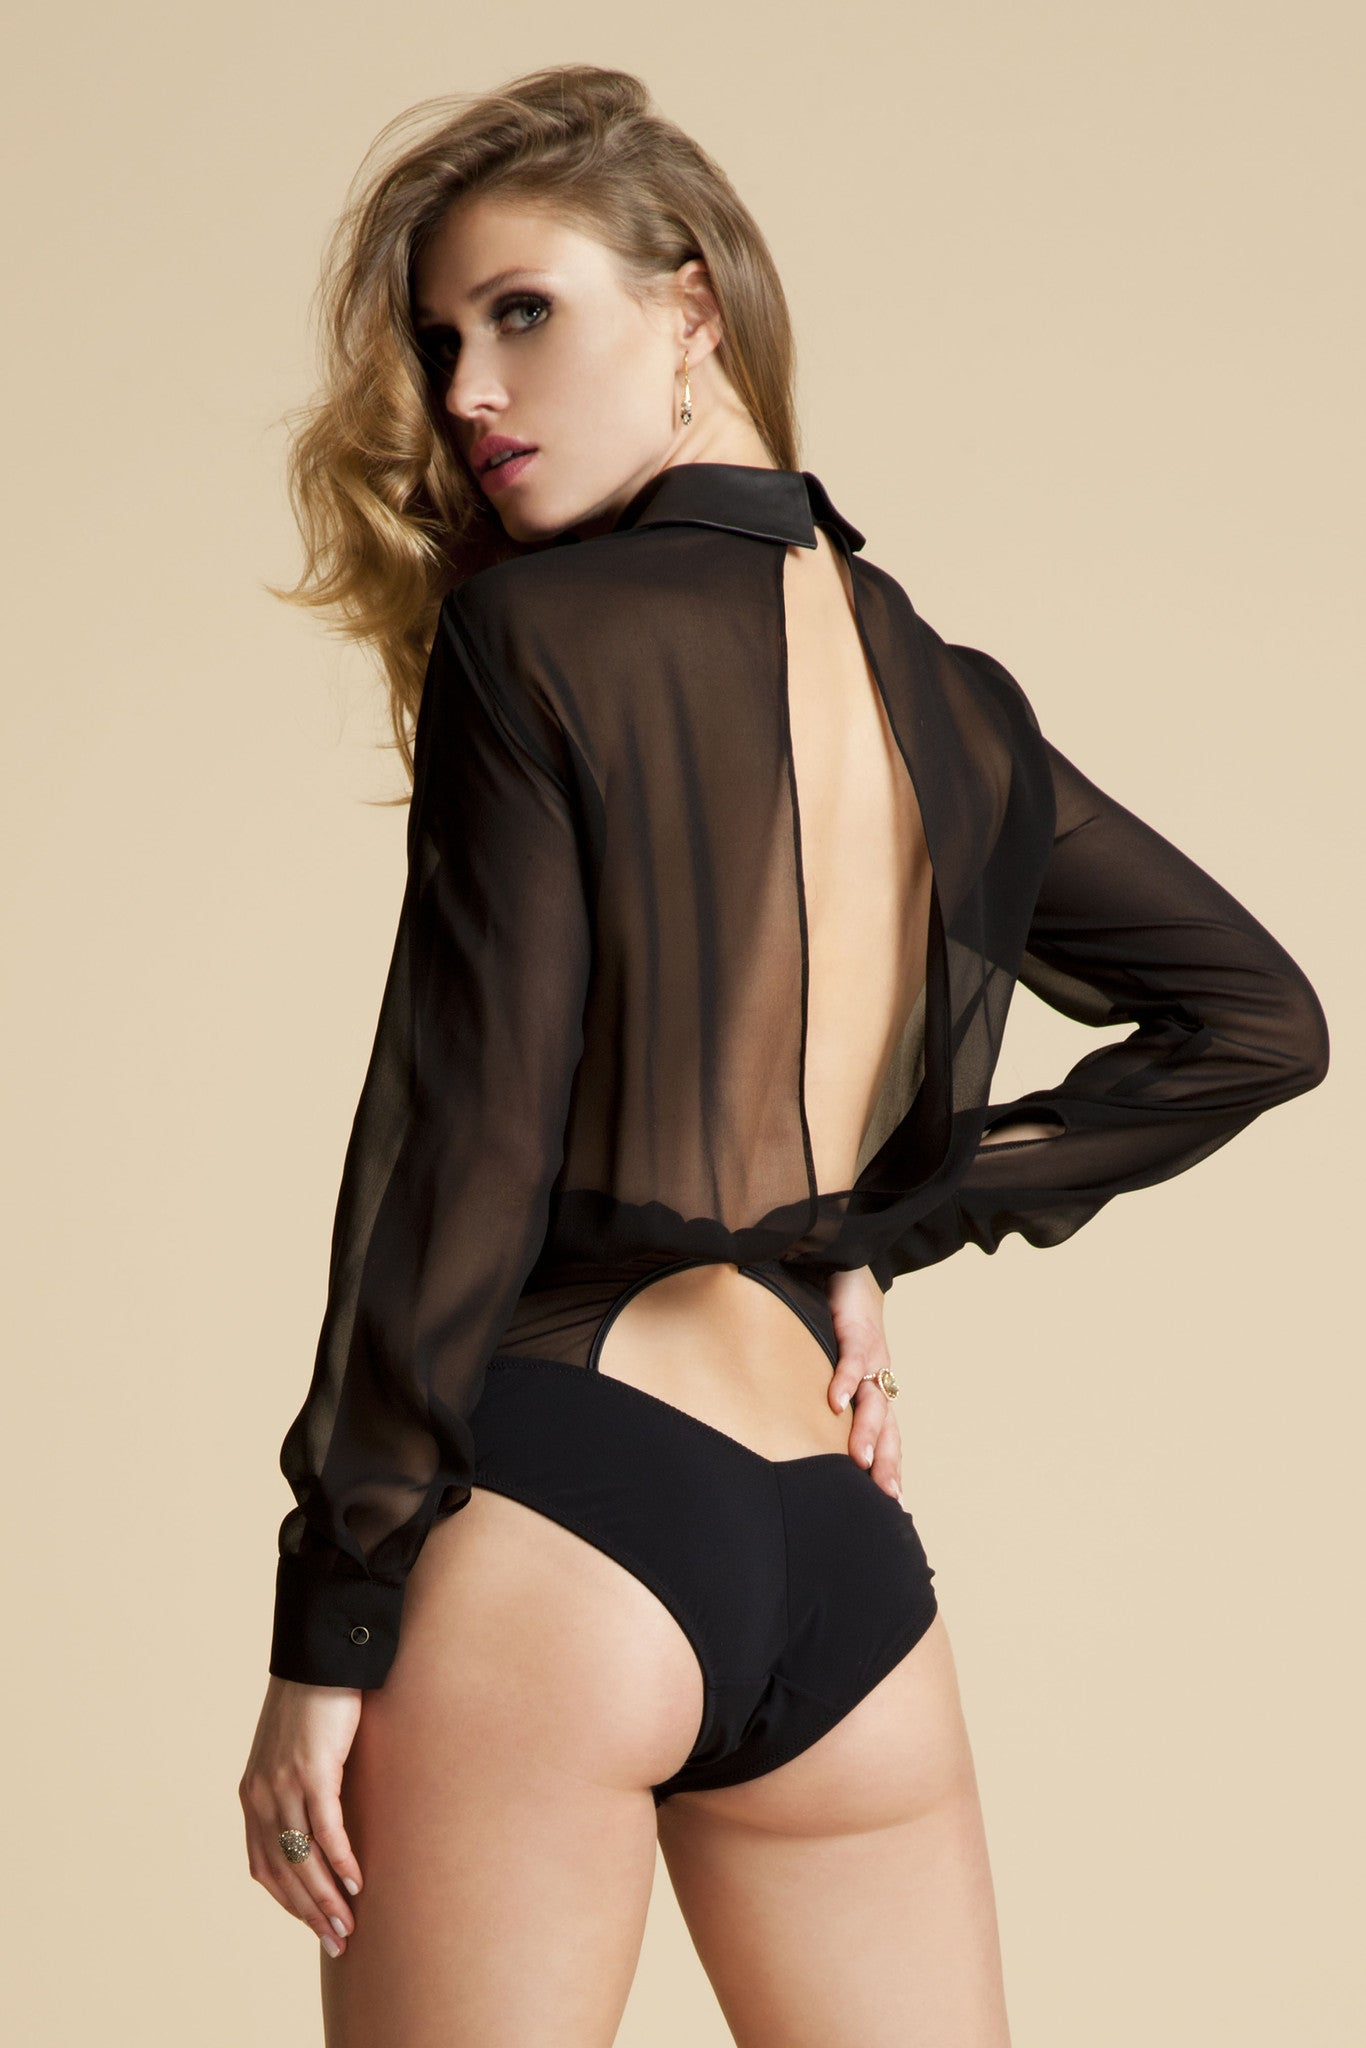 Lula Black blouse bodysuit with long sleeves and open back in sheer black silk